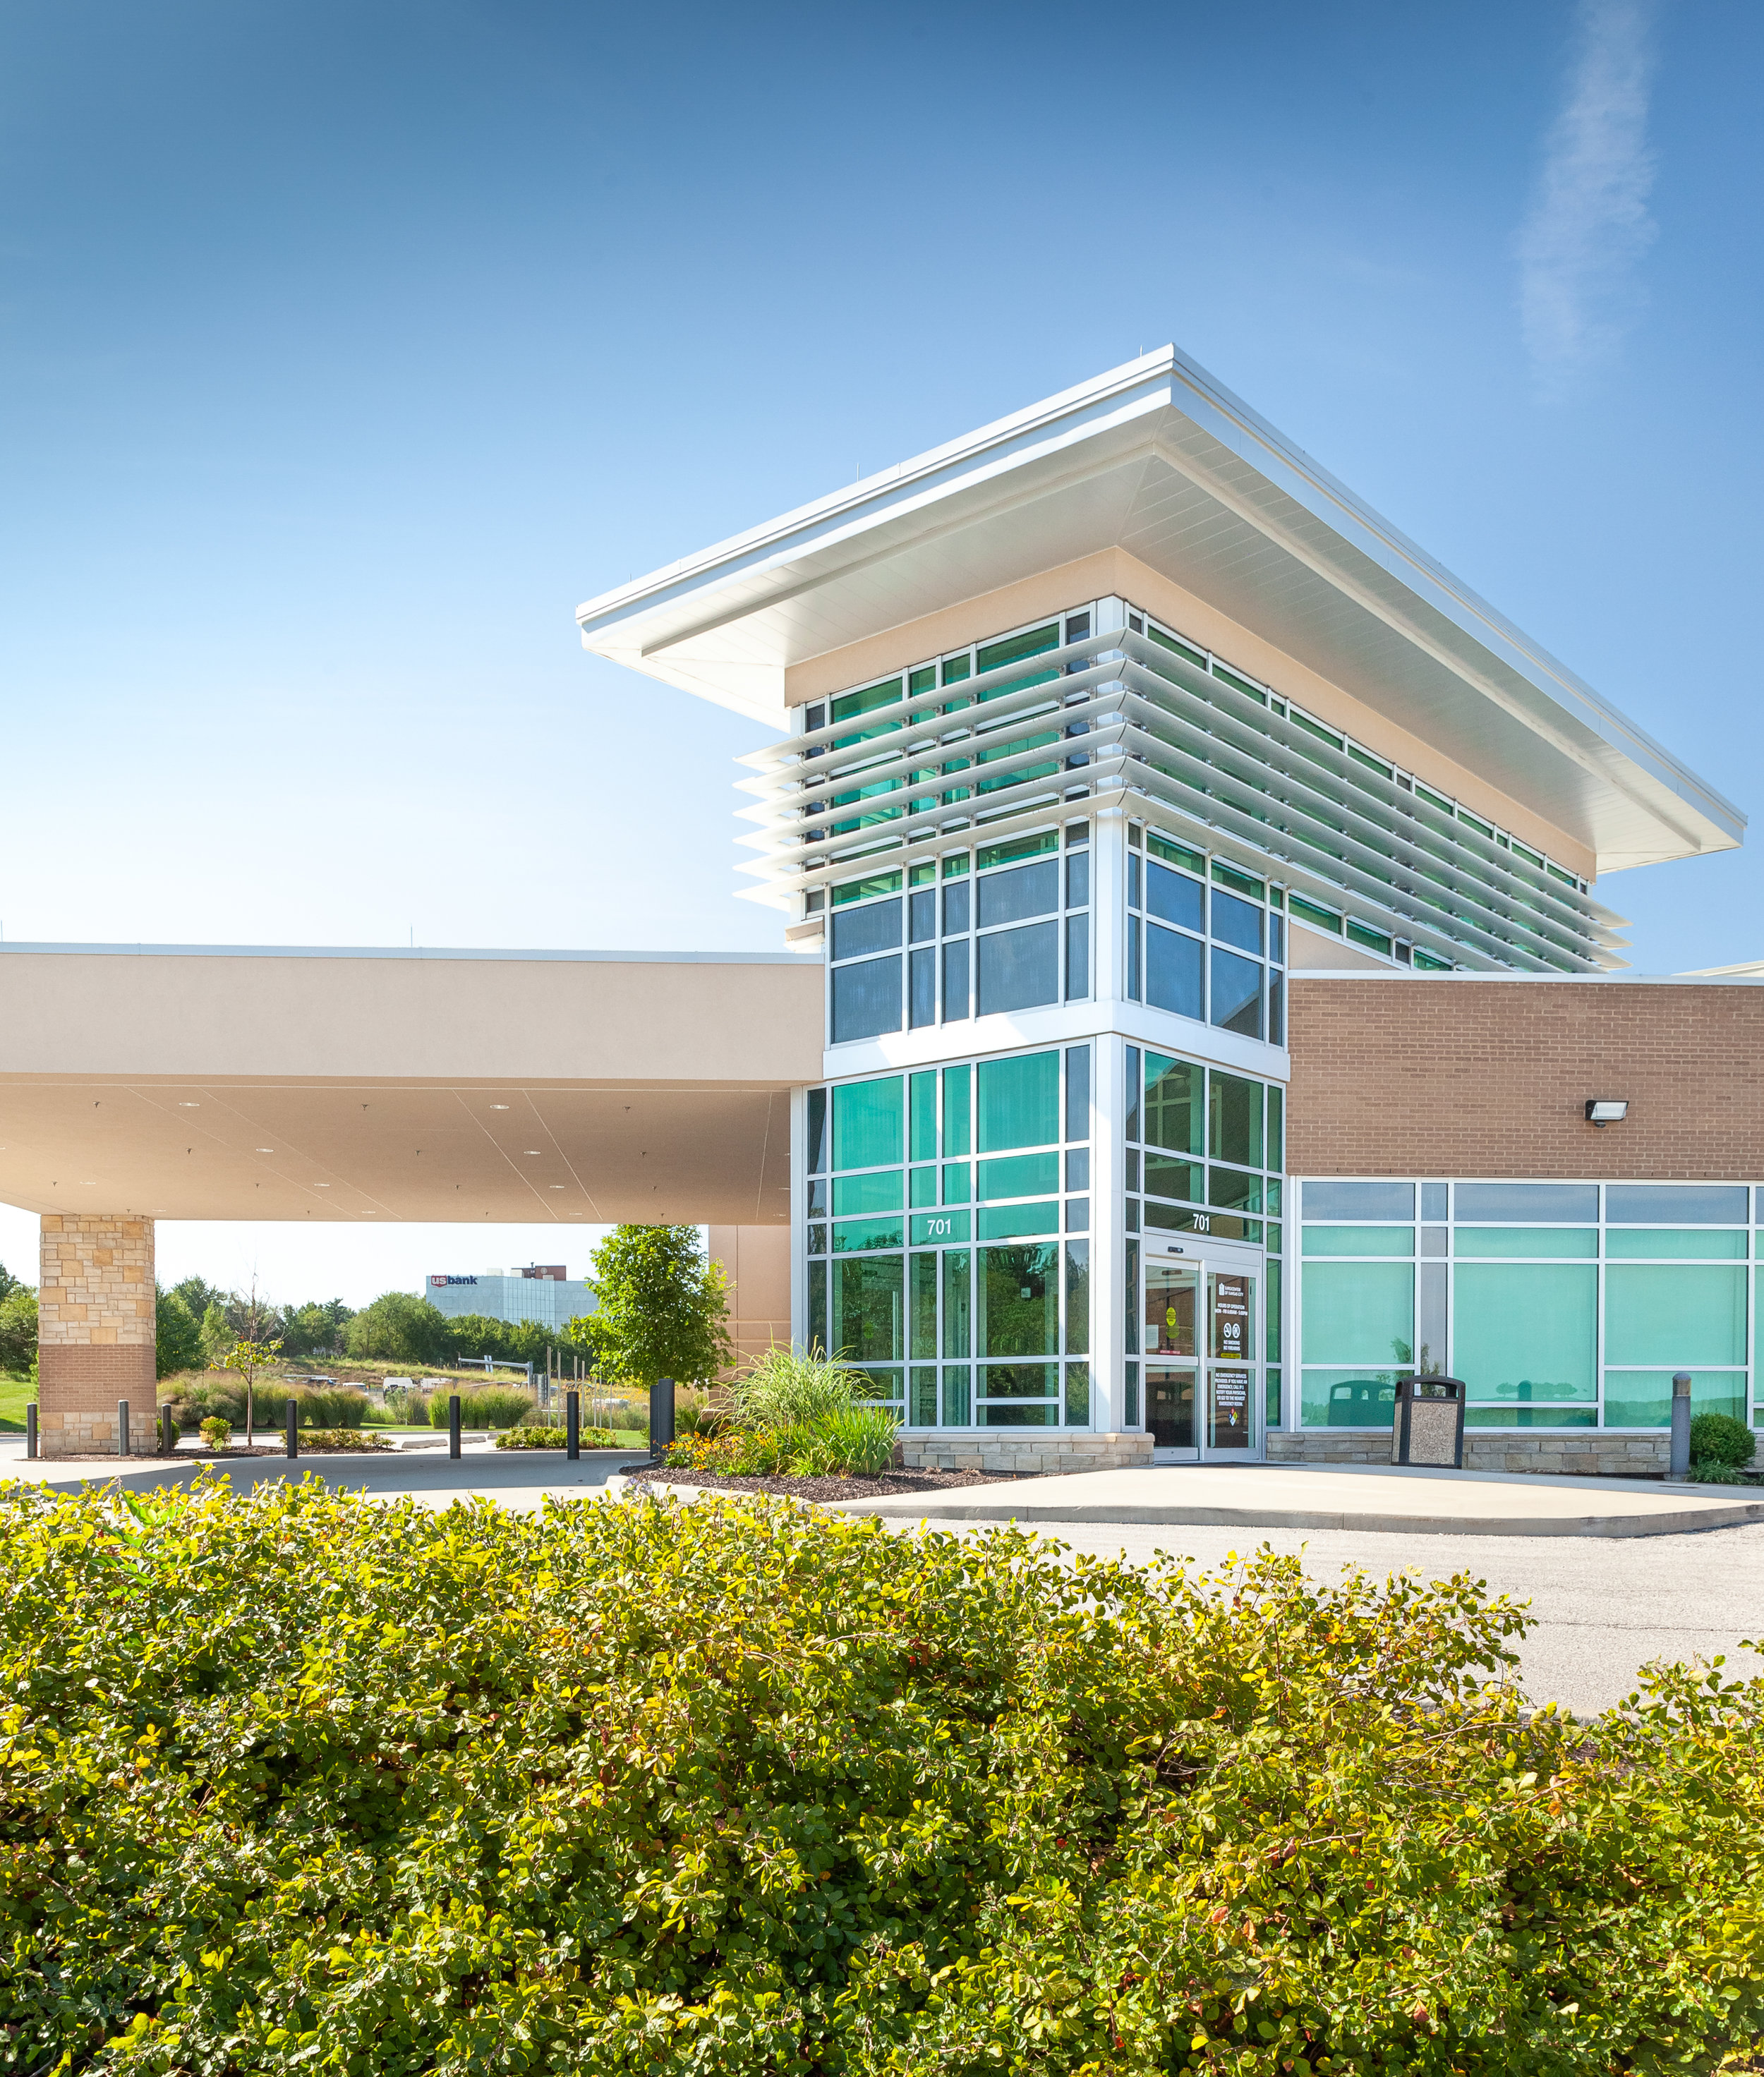 Surgicenter-of-Kansas-City-for-Hereford-Dooley-Architects-by-Jacia-Phillips-4659.jpg